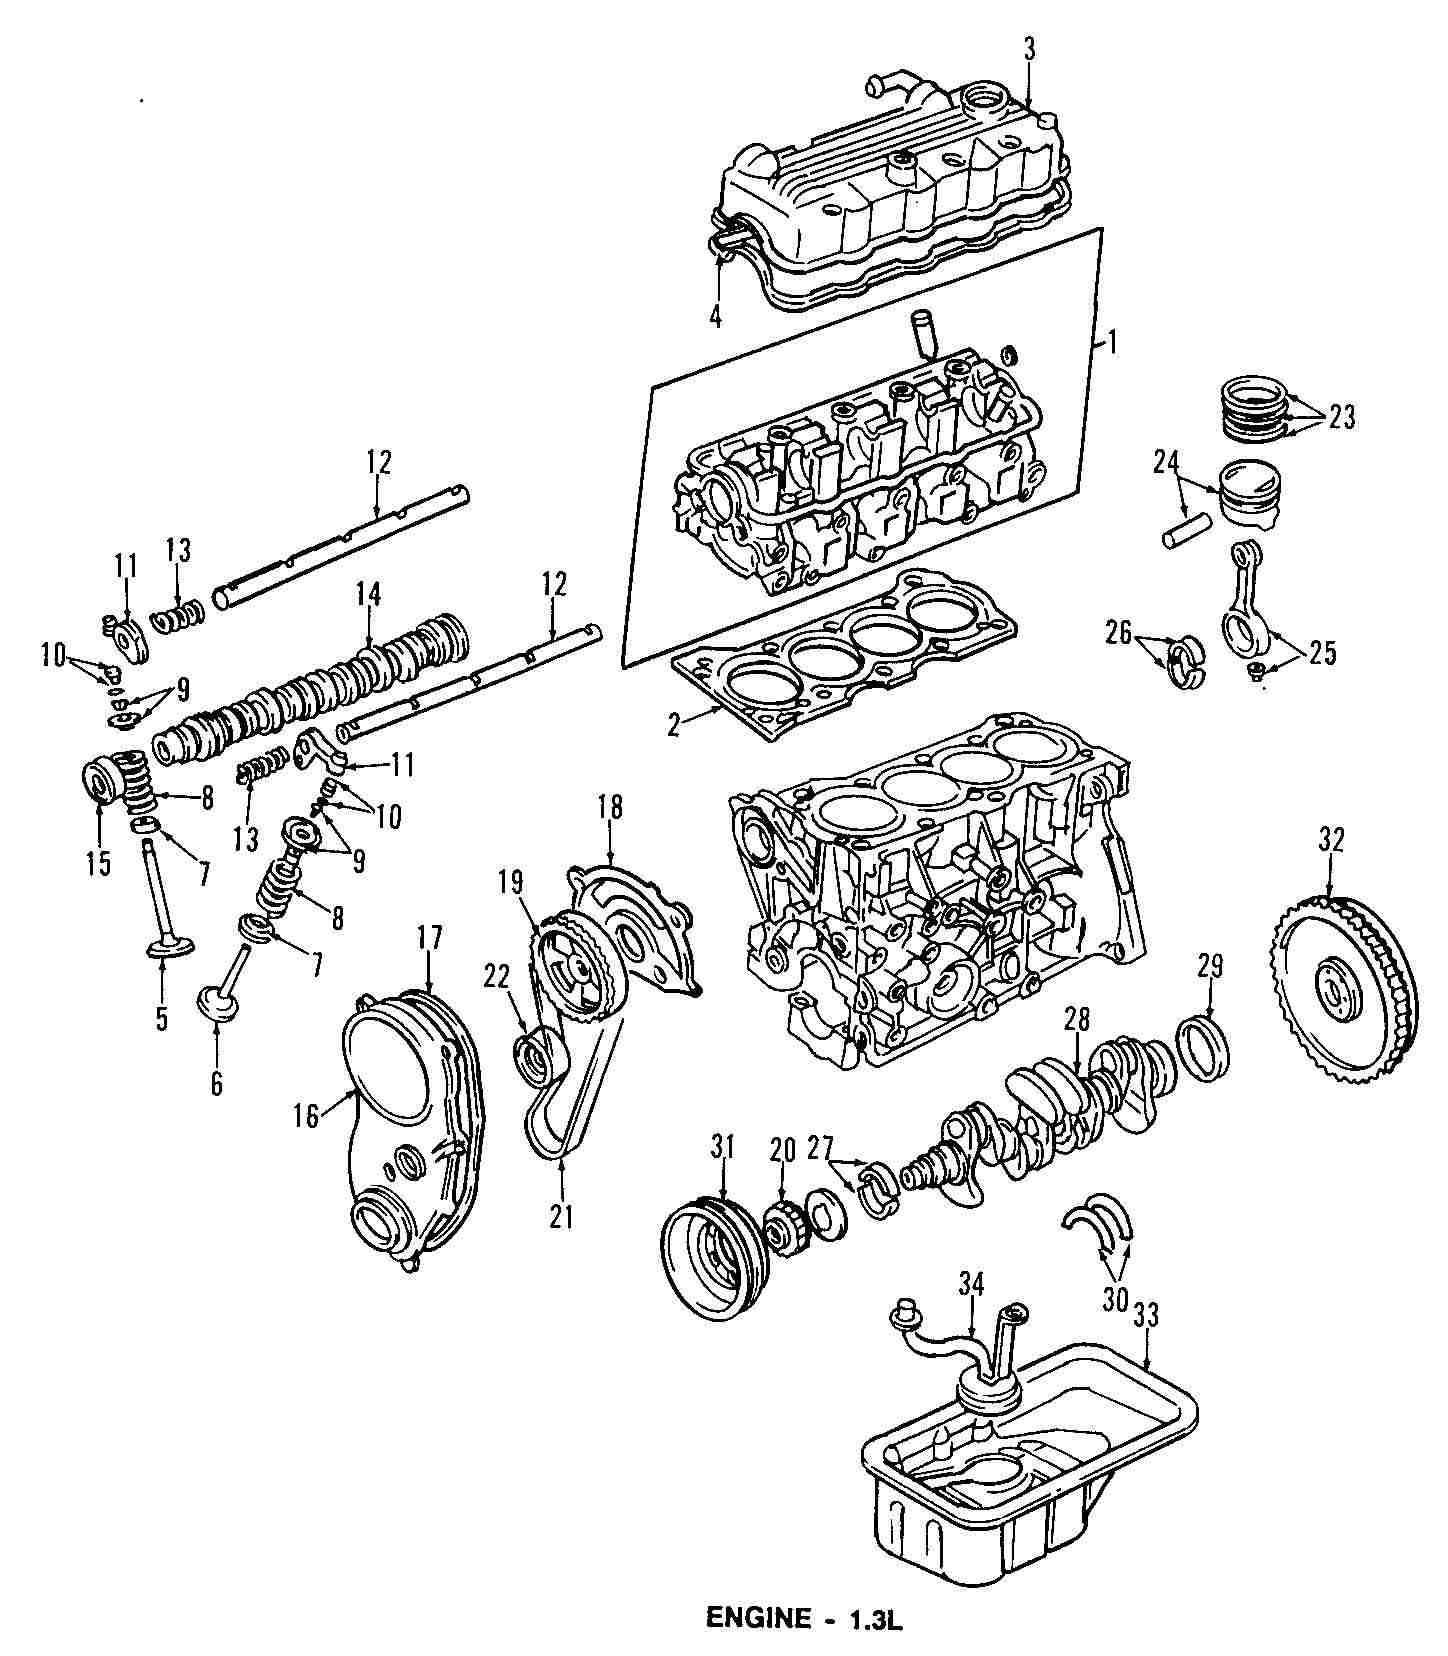 1991 Geo Metro Engine Accessories Diagram Enthusiast Wiring Diagrams 1995 Electricity Basics Rh Casamagdalena Us 91 Cylinder Head